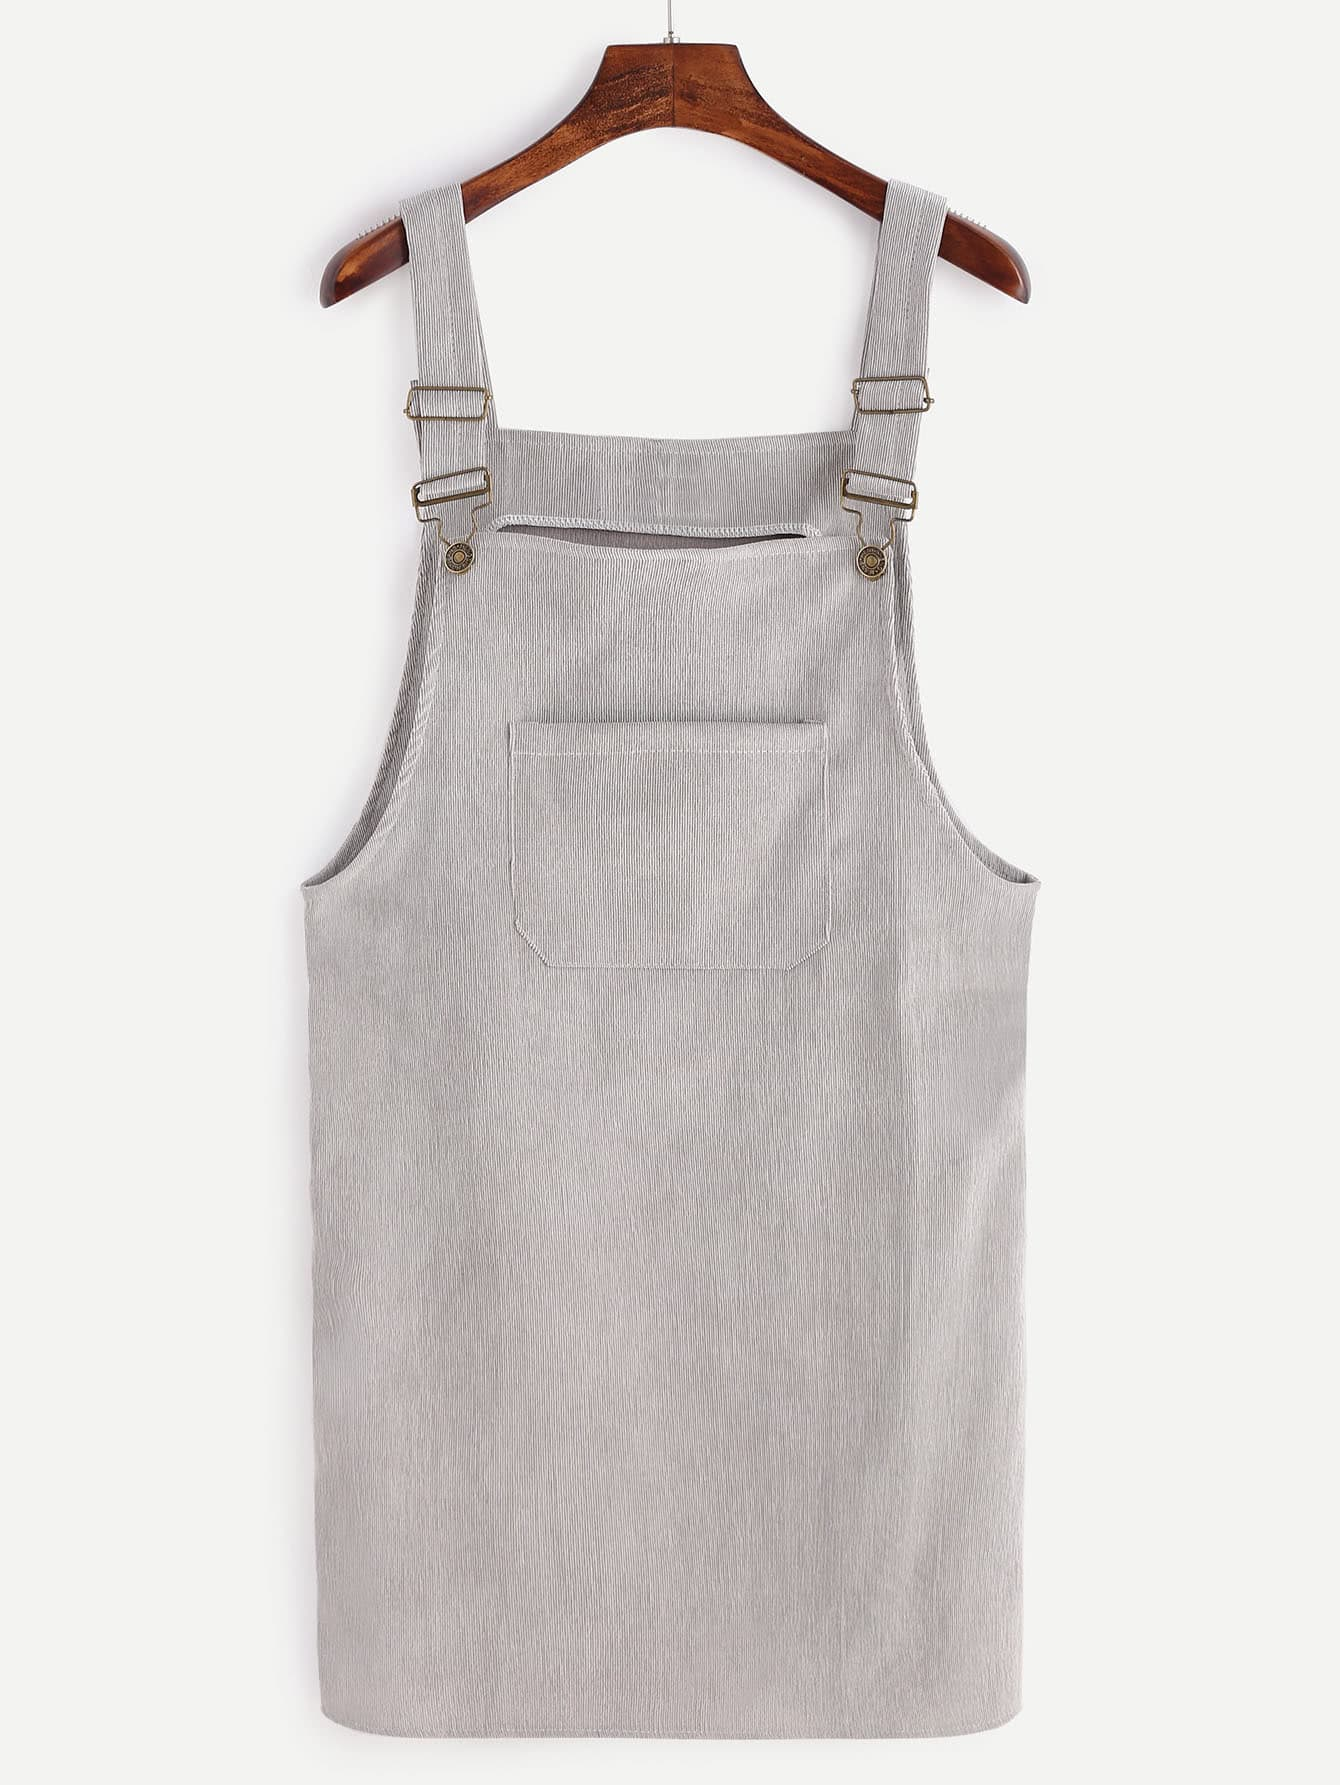 Grey Corduroy Overall Dress With Pocket dress161021101